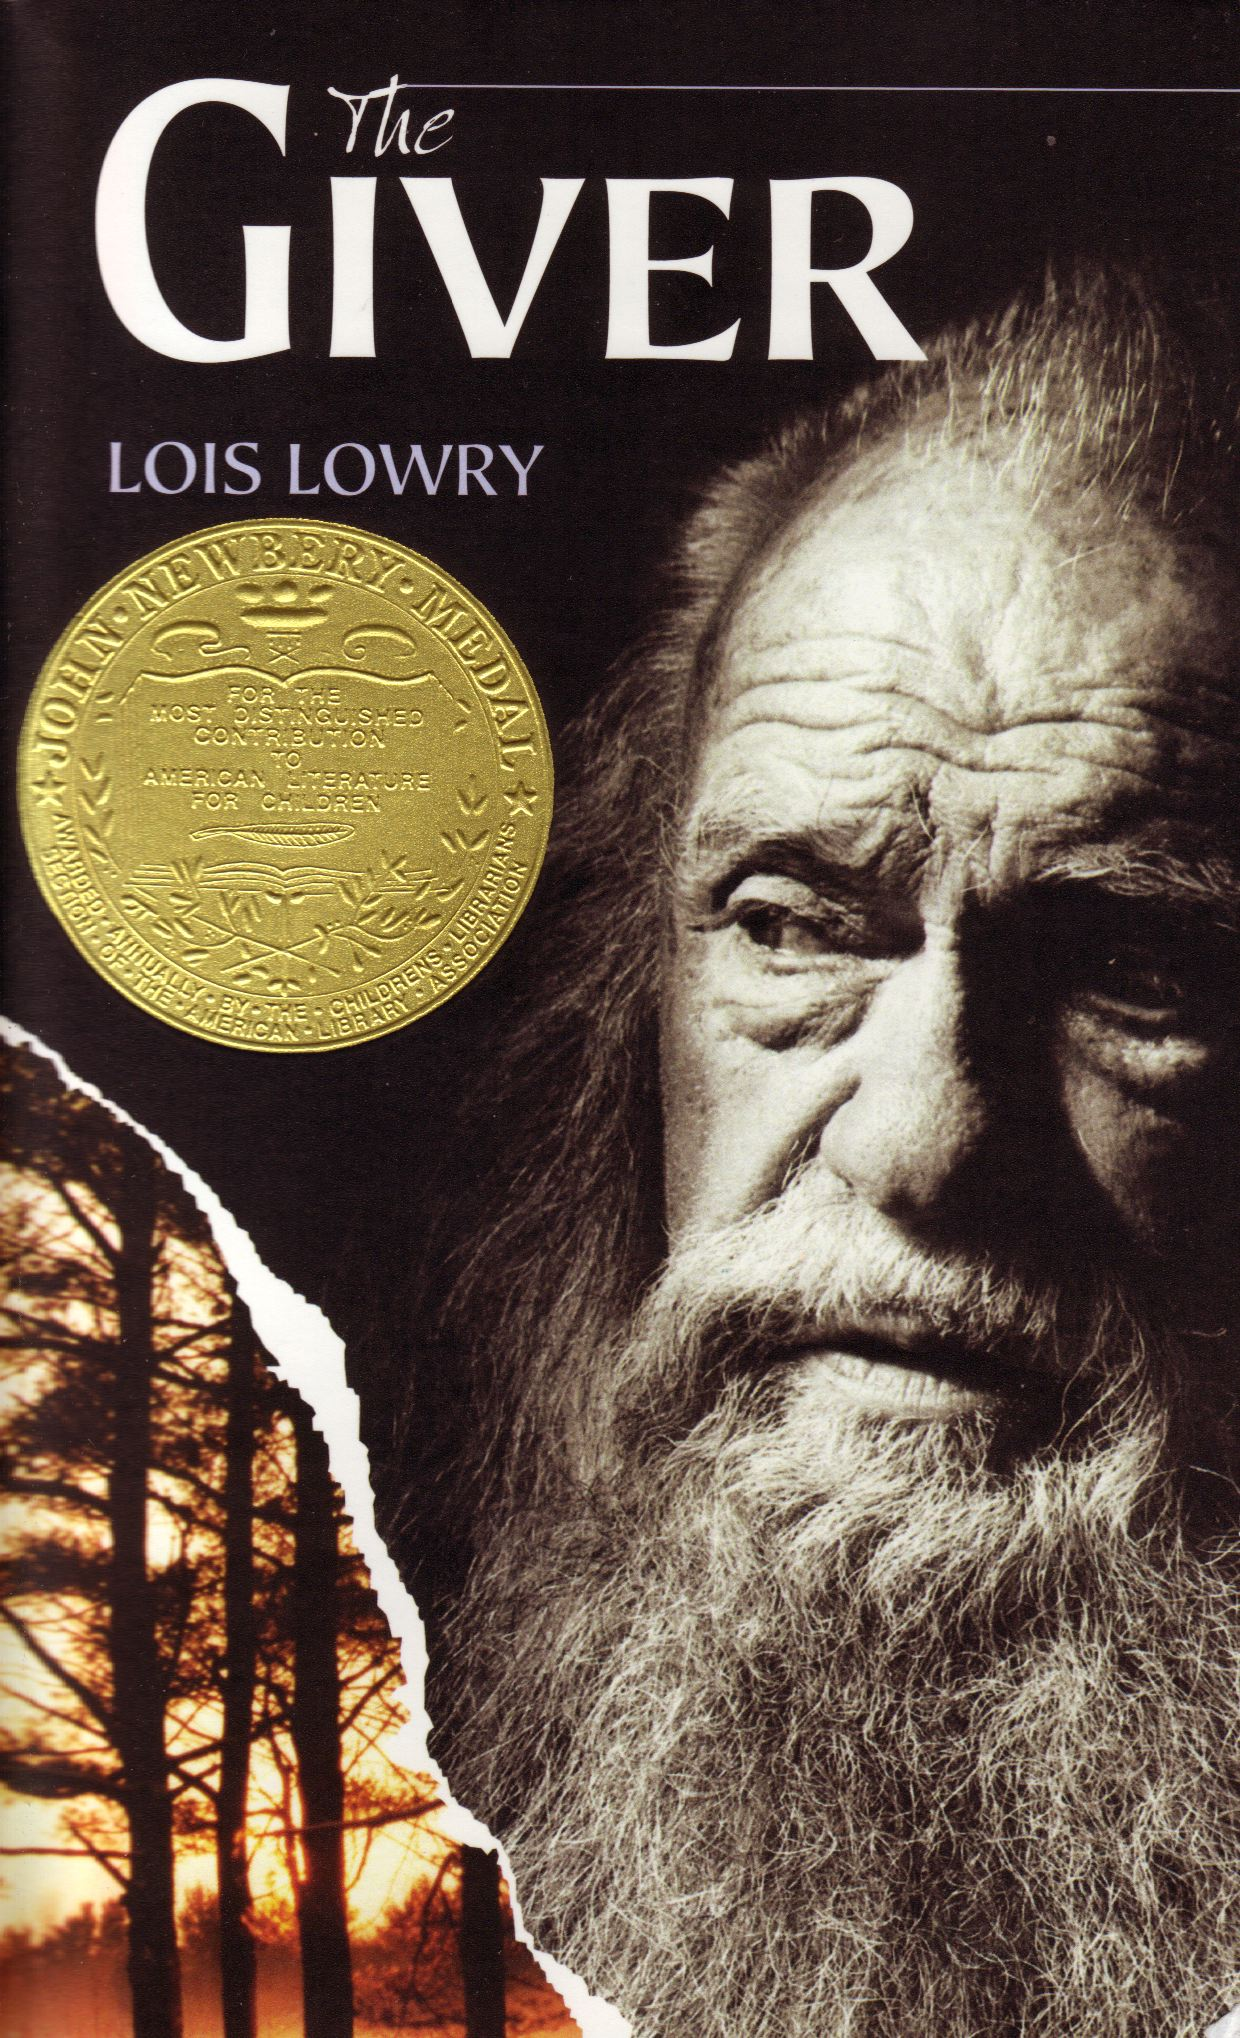 a review of the book the giver lois lowry I can't even begin to explain how much this book means to me lois lowry's the giver changed my life when i was 14 (see story here), and reading son feels like coming full circle.